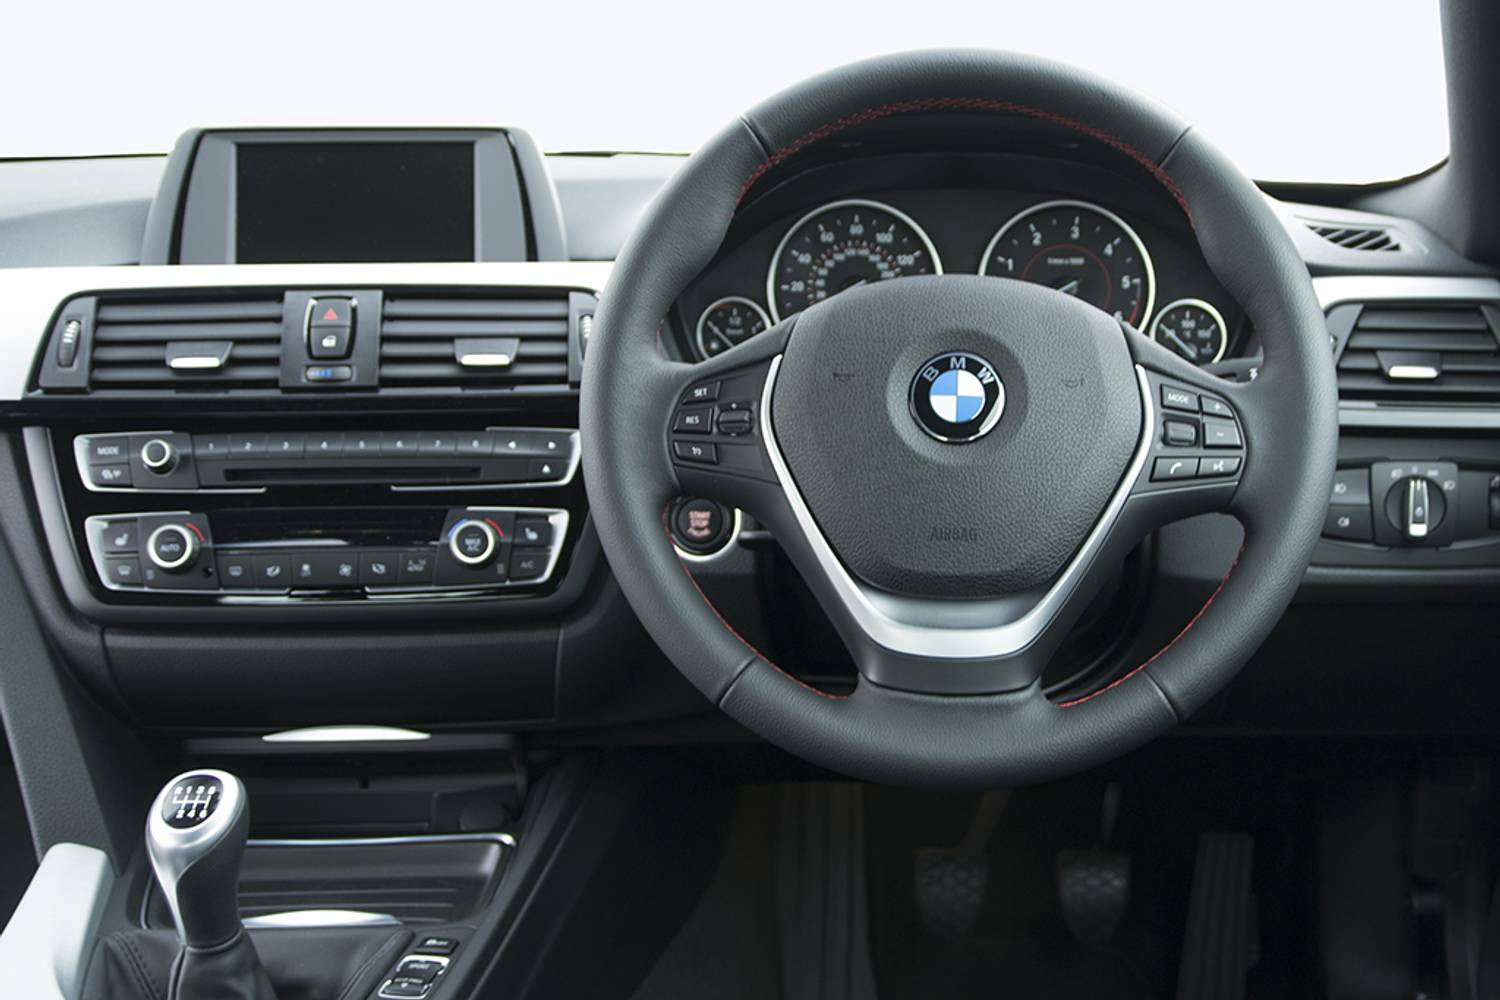 New BMW Series Diesel Coupe D PS M Sport Door Auto - Bmw 4 series interior